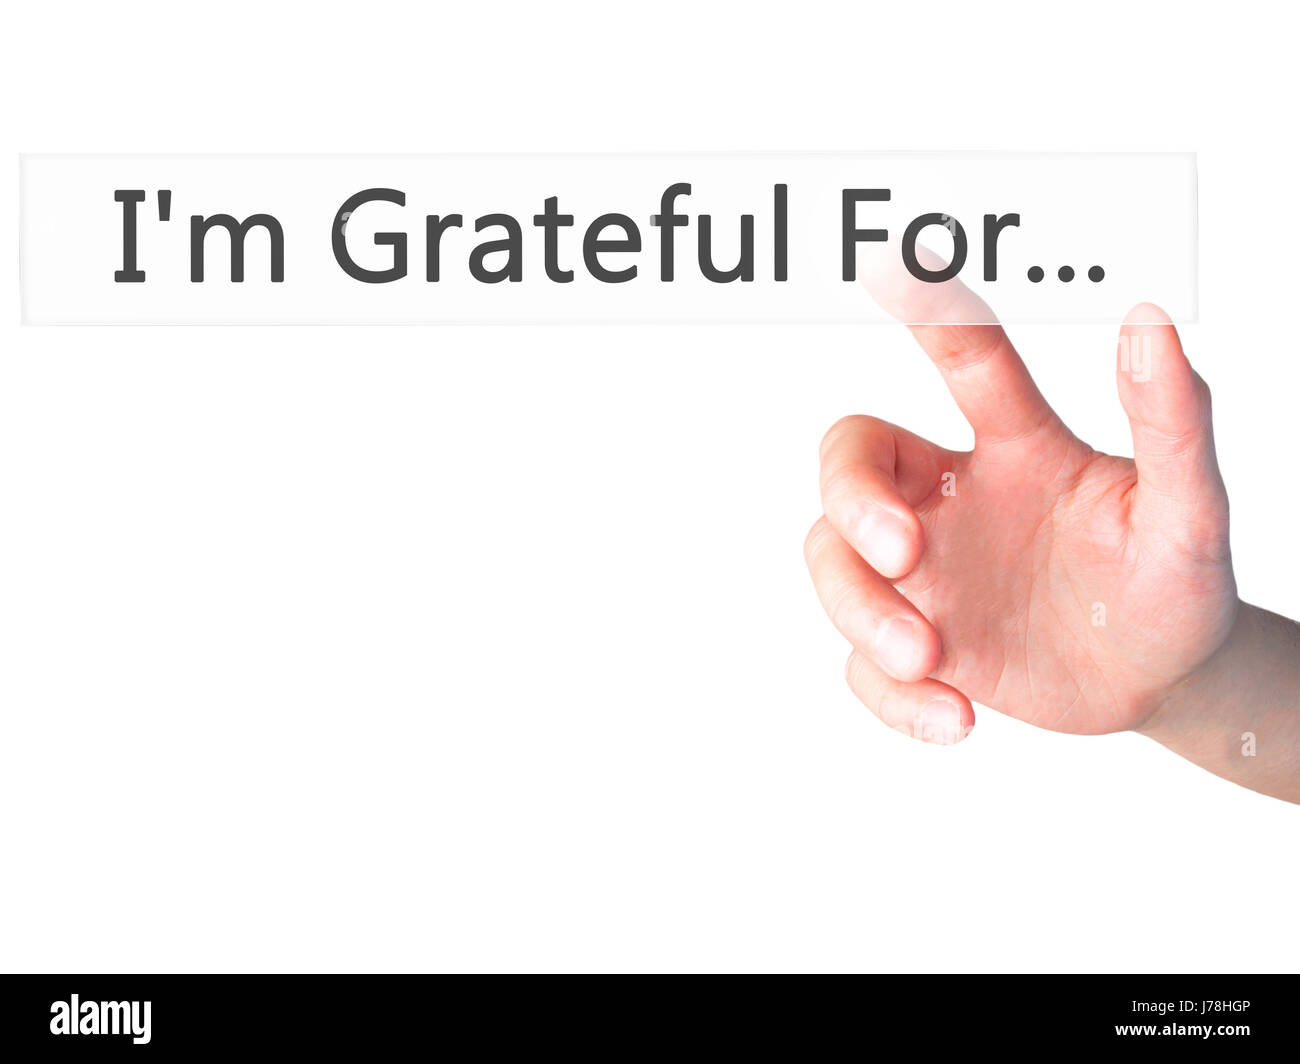 I'm Grateful For... - Hand pressing a button on blurred background concept . Business, technology, internet - Stock Image